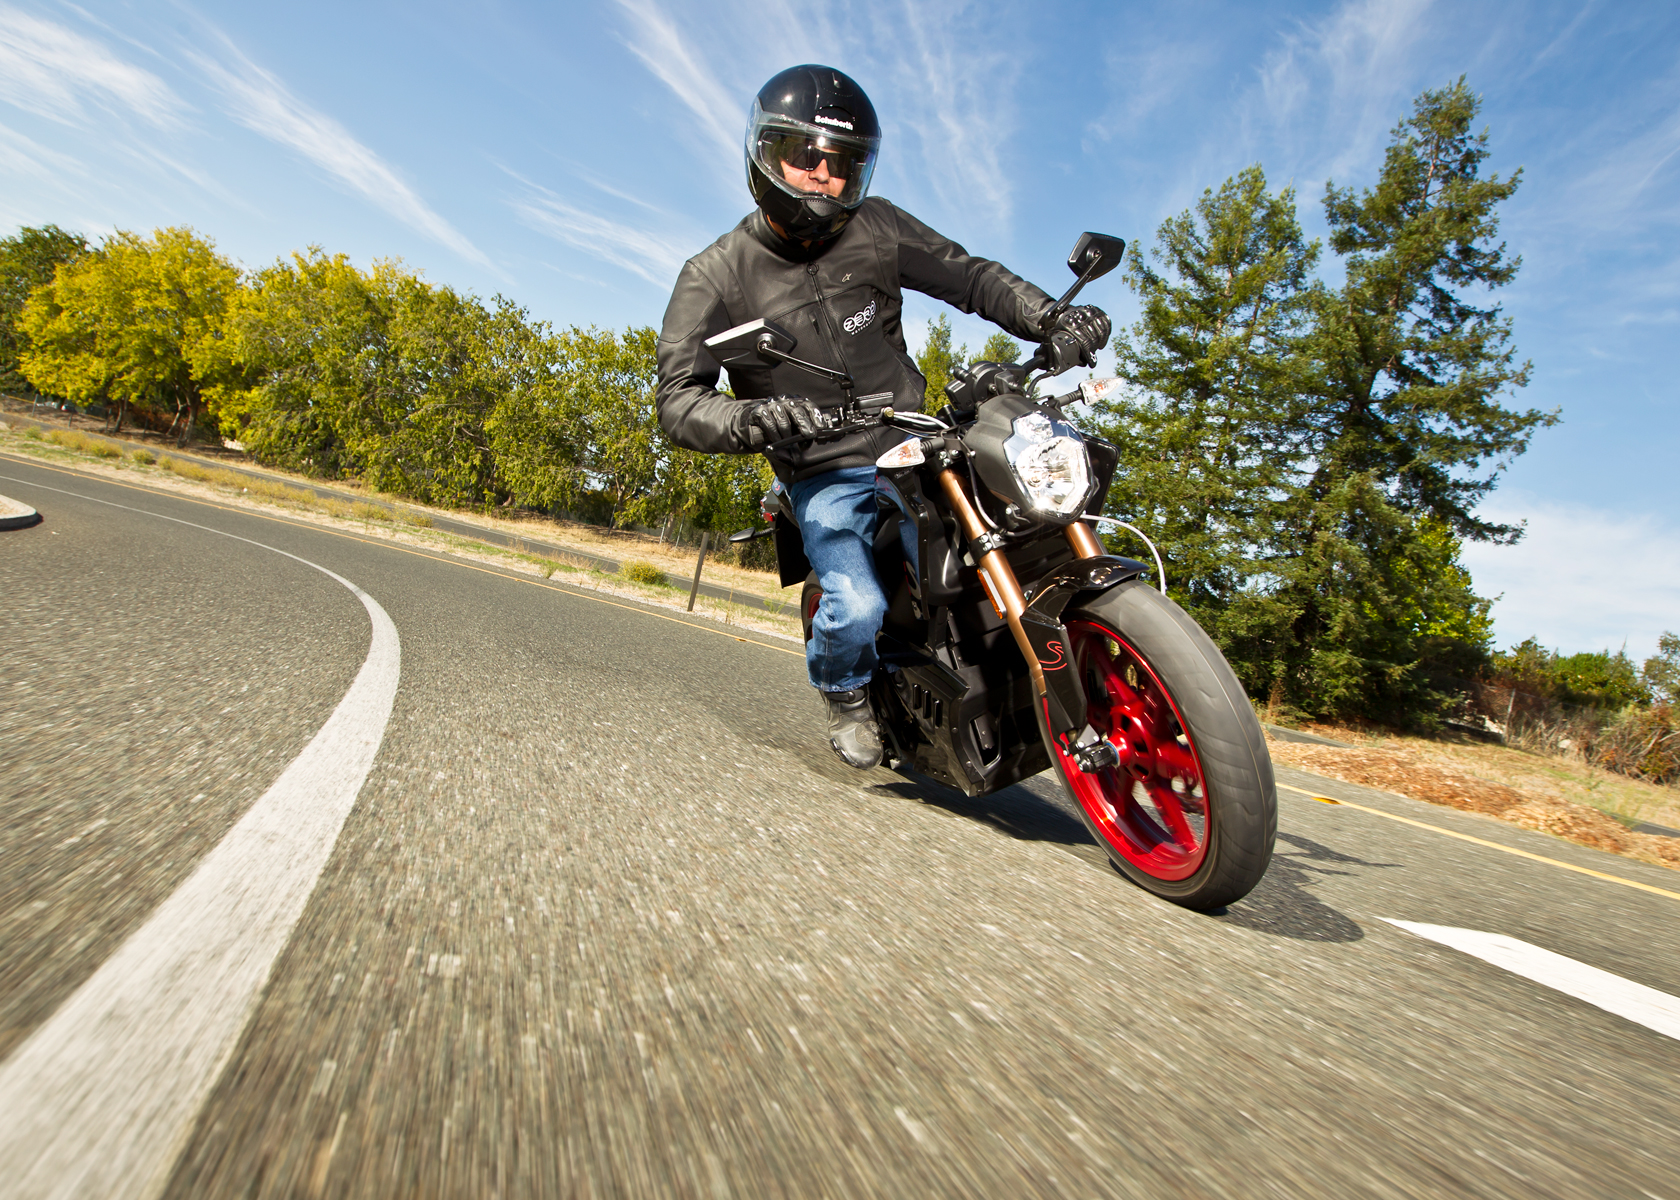 2012 Zero S Electric Motorcycle: Cruising, Lean Right